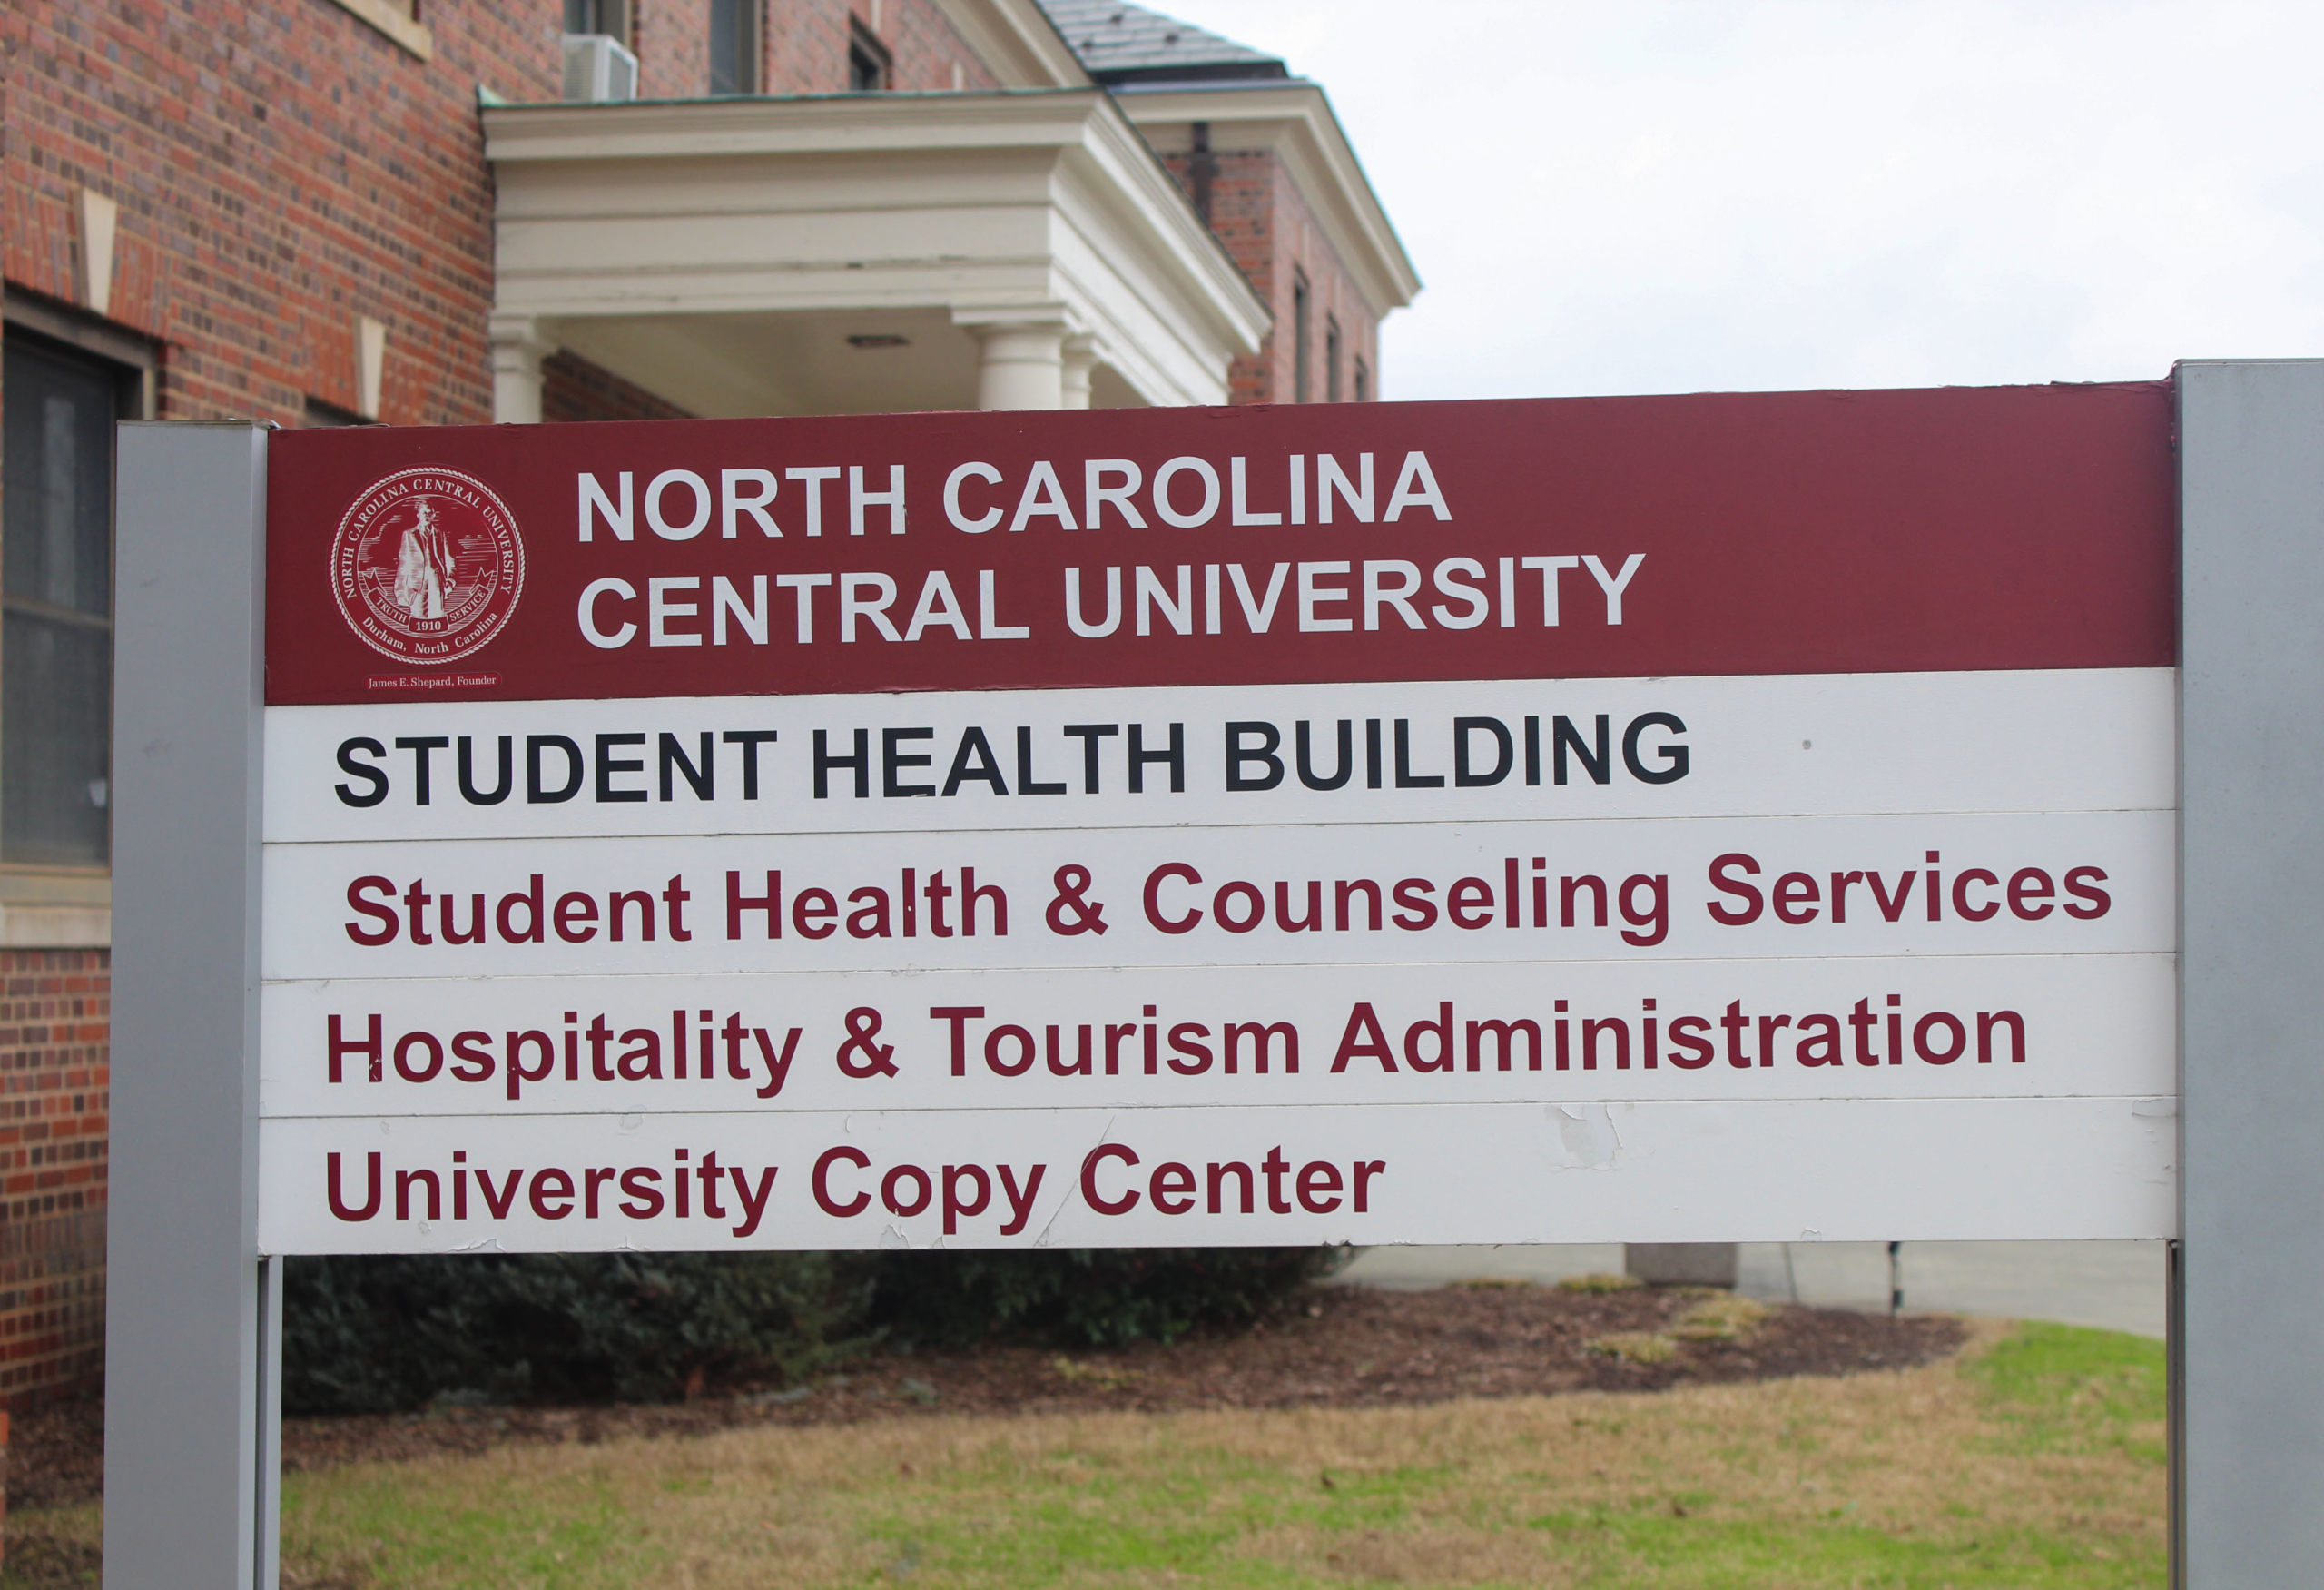 Student-Health-scaled.jpg?time=1591246555